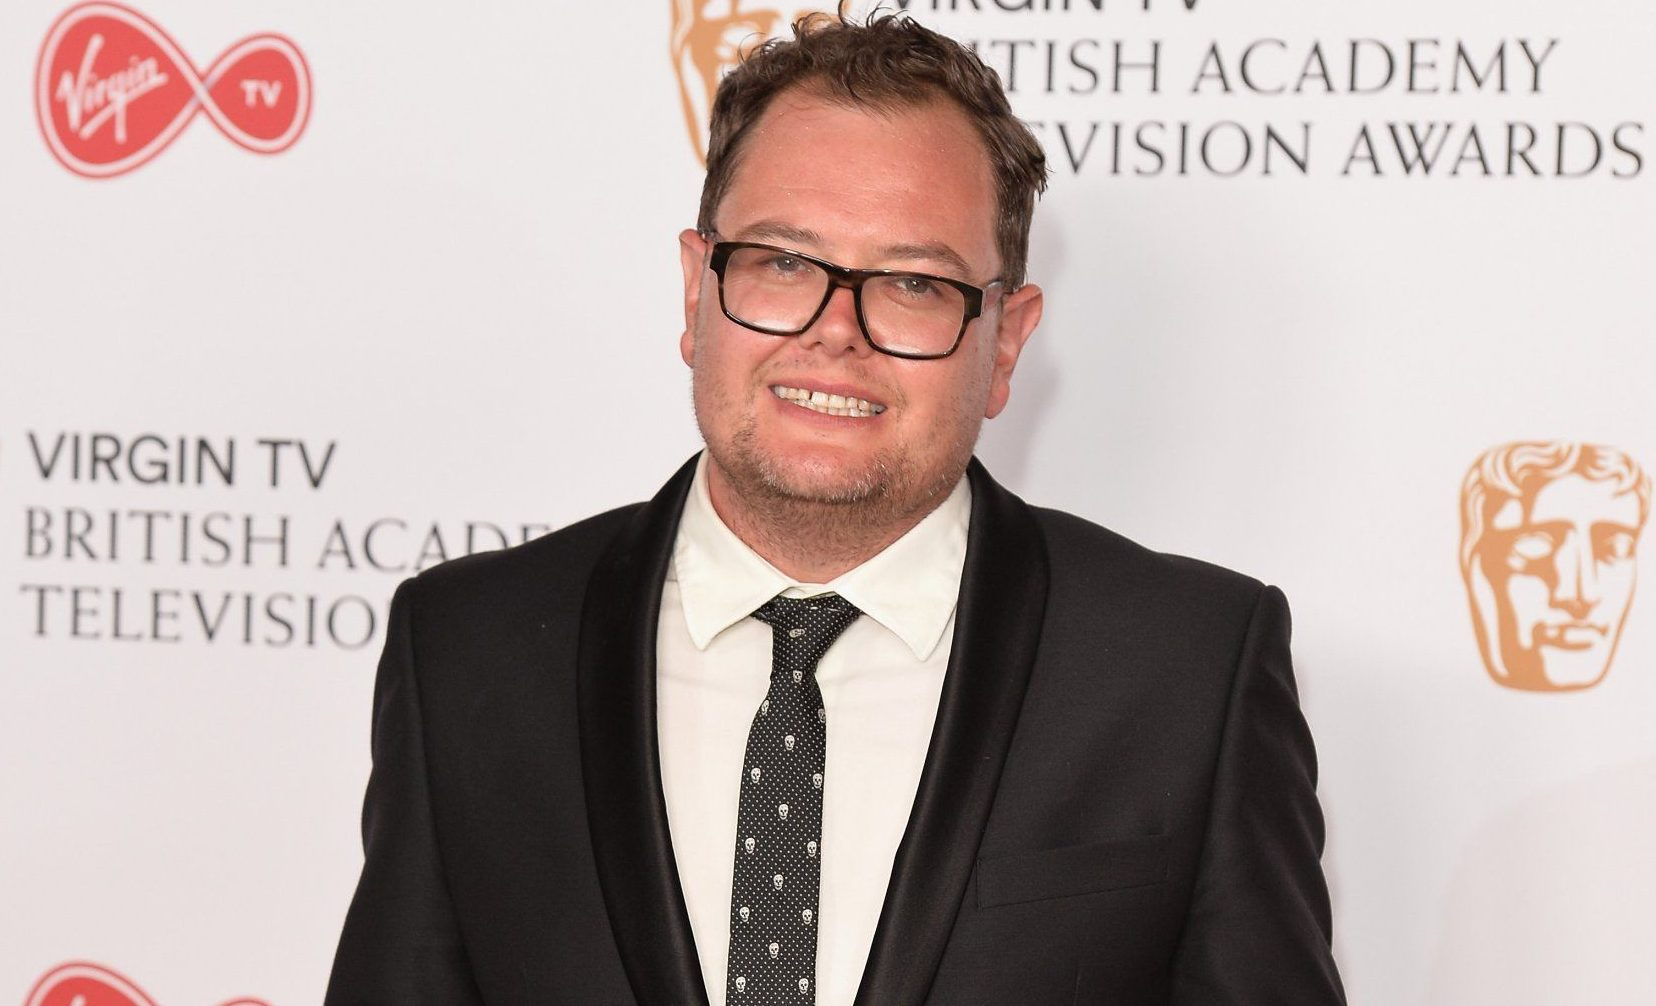 Alan Carr also fronted Channel 4's reboot of The Price Is Right